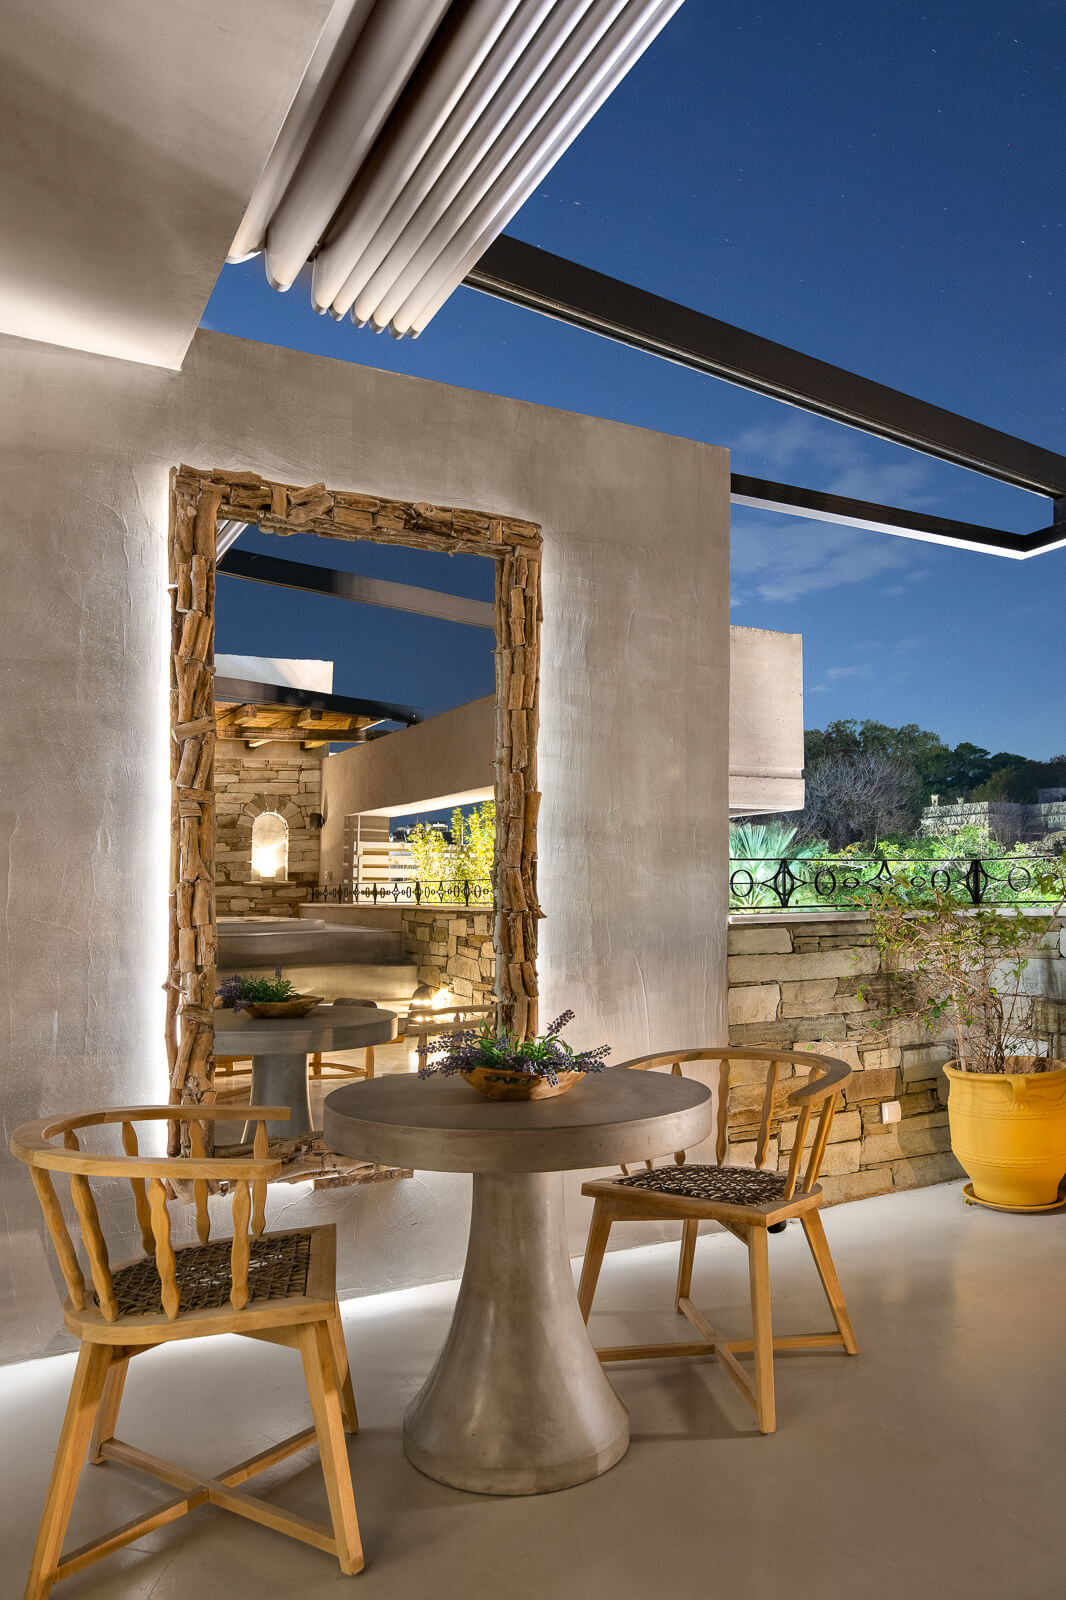 Helios Suite Terrace with Private Hot Tub - Elakati Hotel in Rhodes Greece